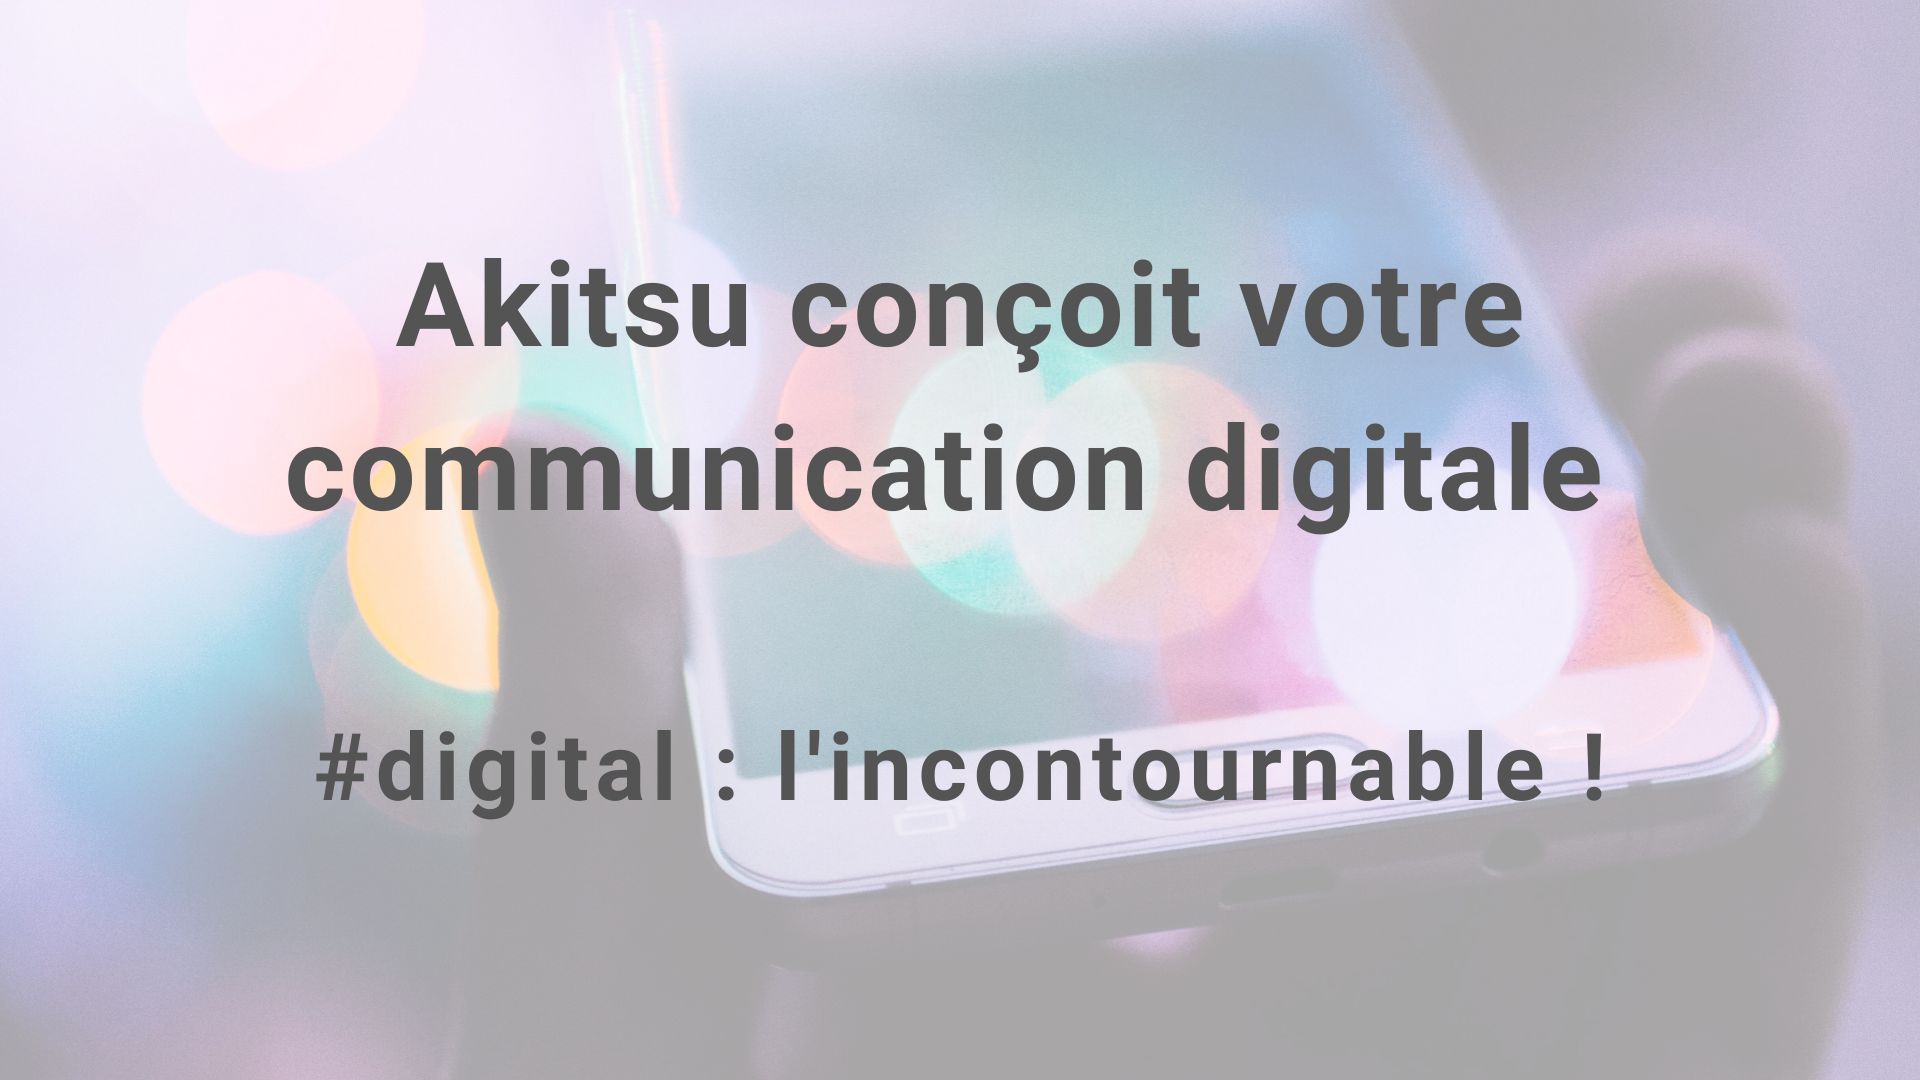 communication digitale. Illustration